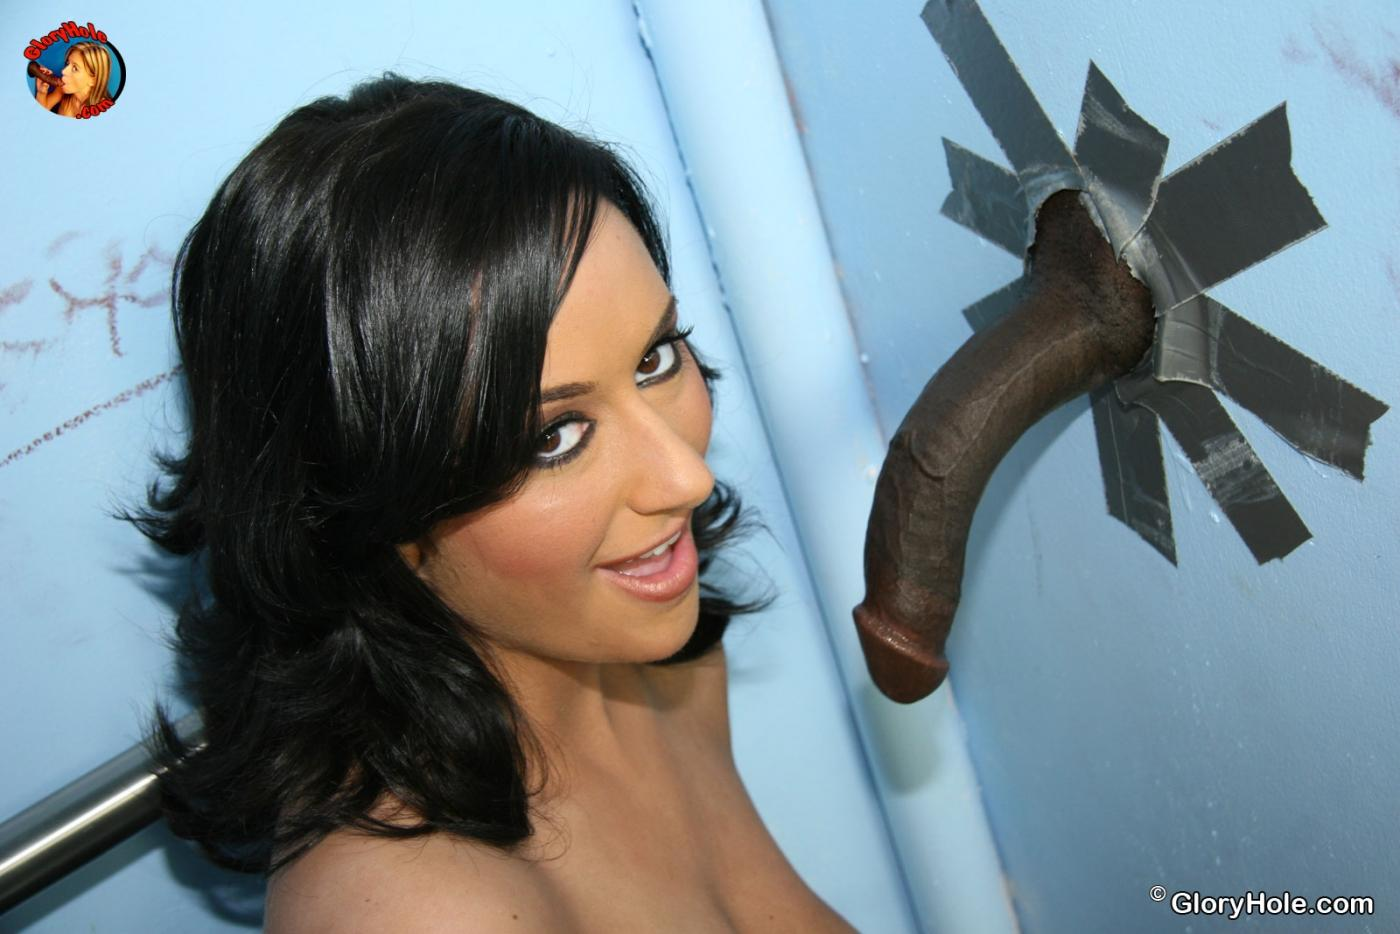 Jordan starr glory hole tube